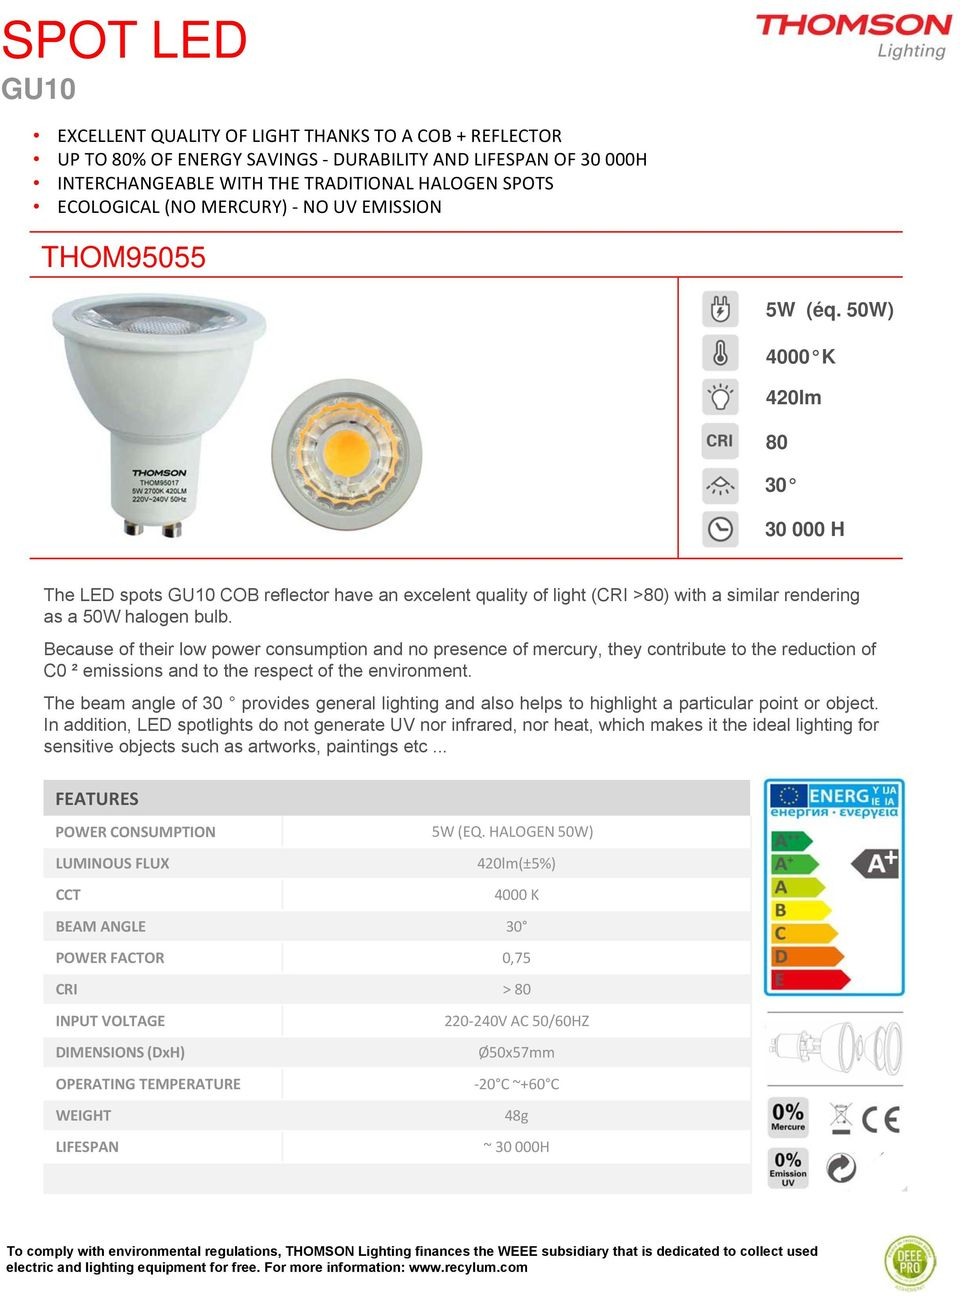 Table Of Contents Thomson Values Lighting Product Led Driver Powers Halogen Replacement 50w 4000 K 420lm 80 30 000 H The Spots Gu10 Cob Reflector